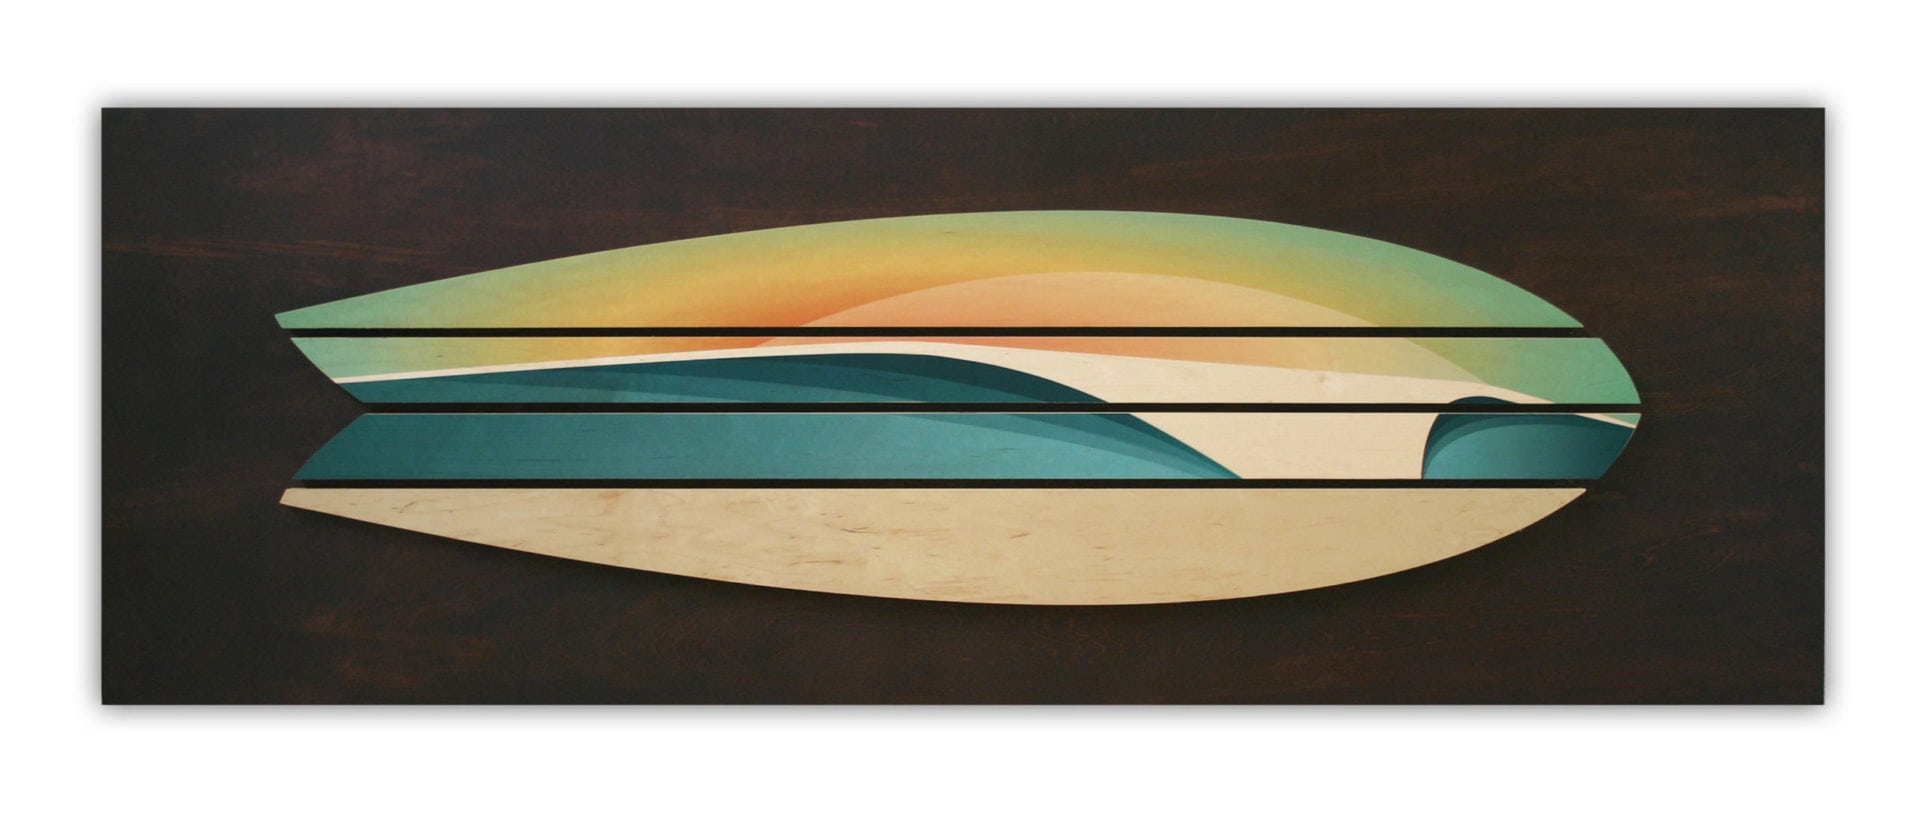 wooden surfboard decor | beach artwork decor | Surfboard wall art | Shaun Thomas | Wooden wave art